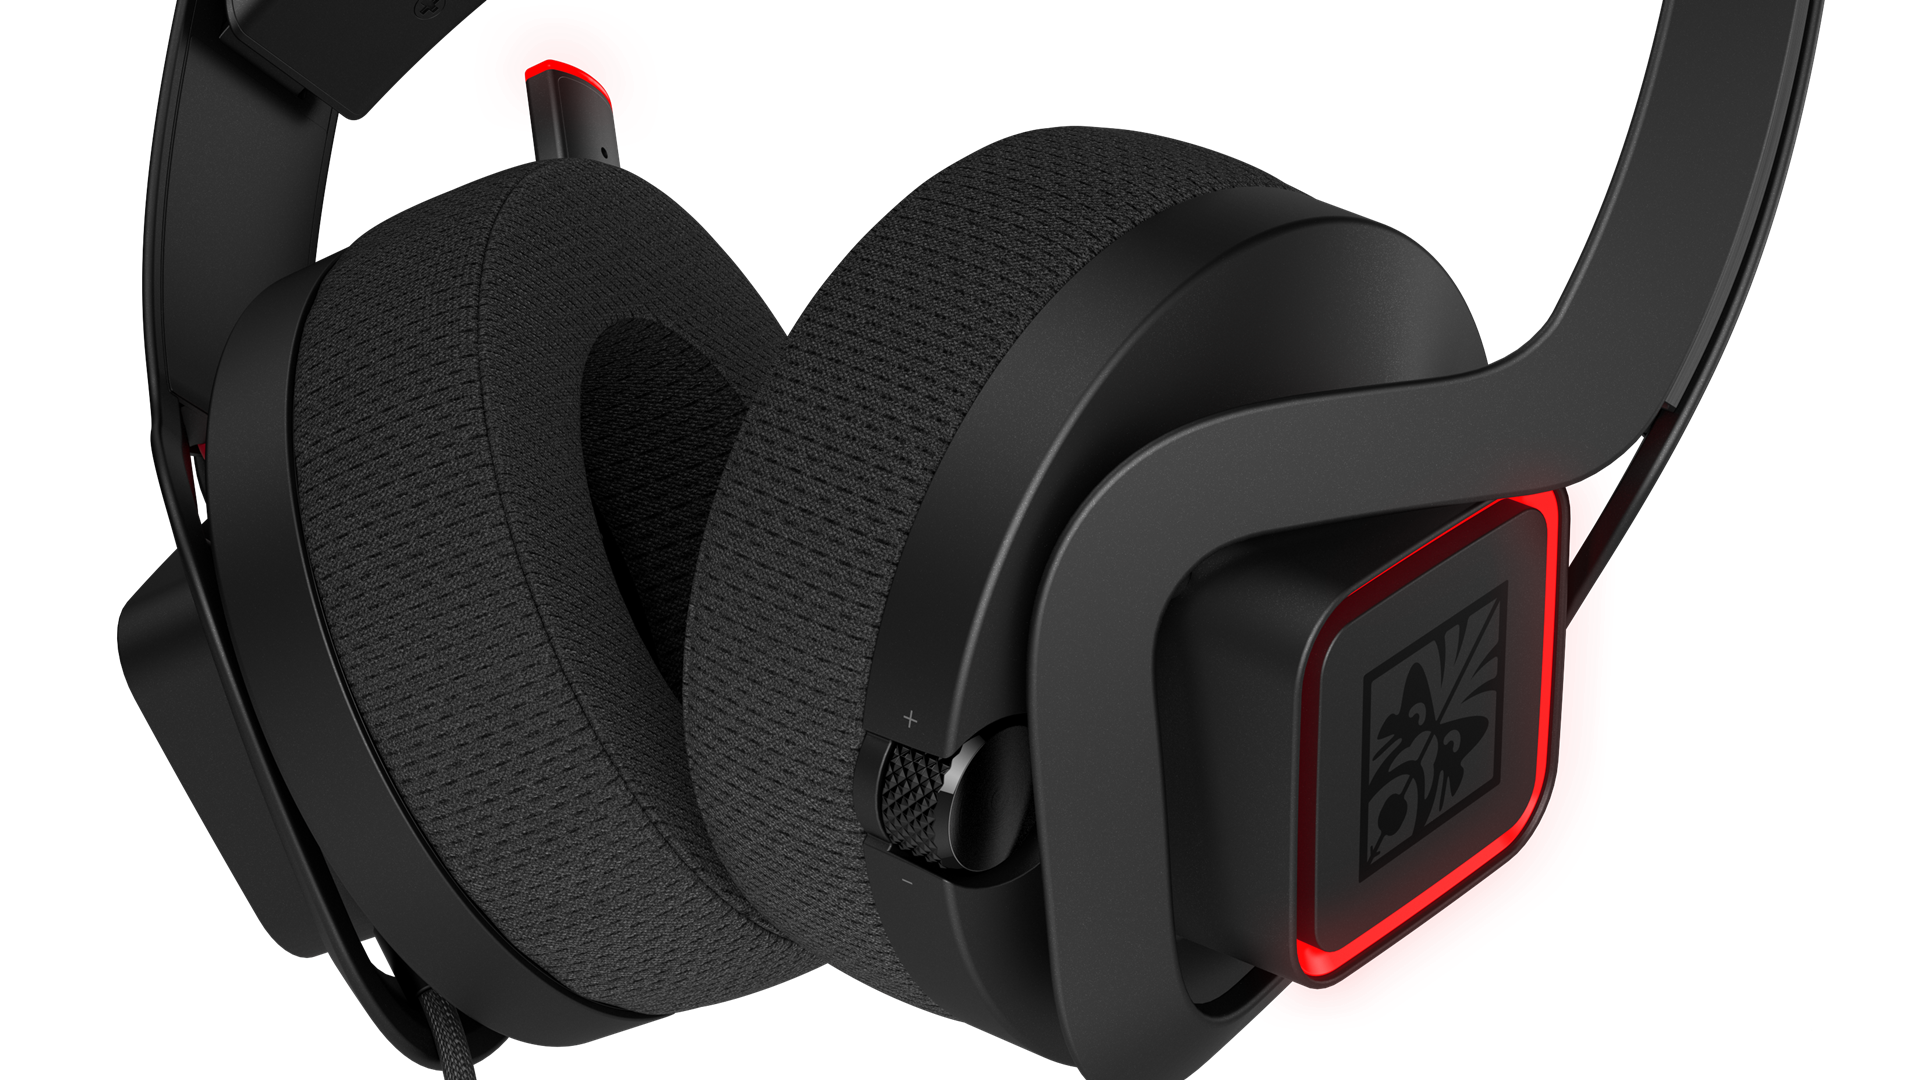 OMEN Mindframe headset with active cooling is coming to SA - htxt africa